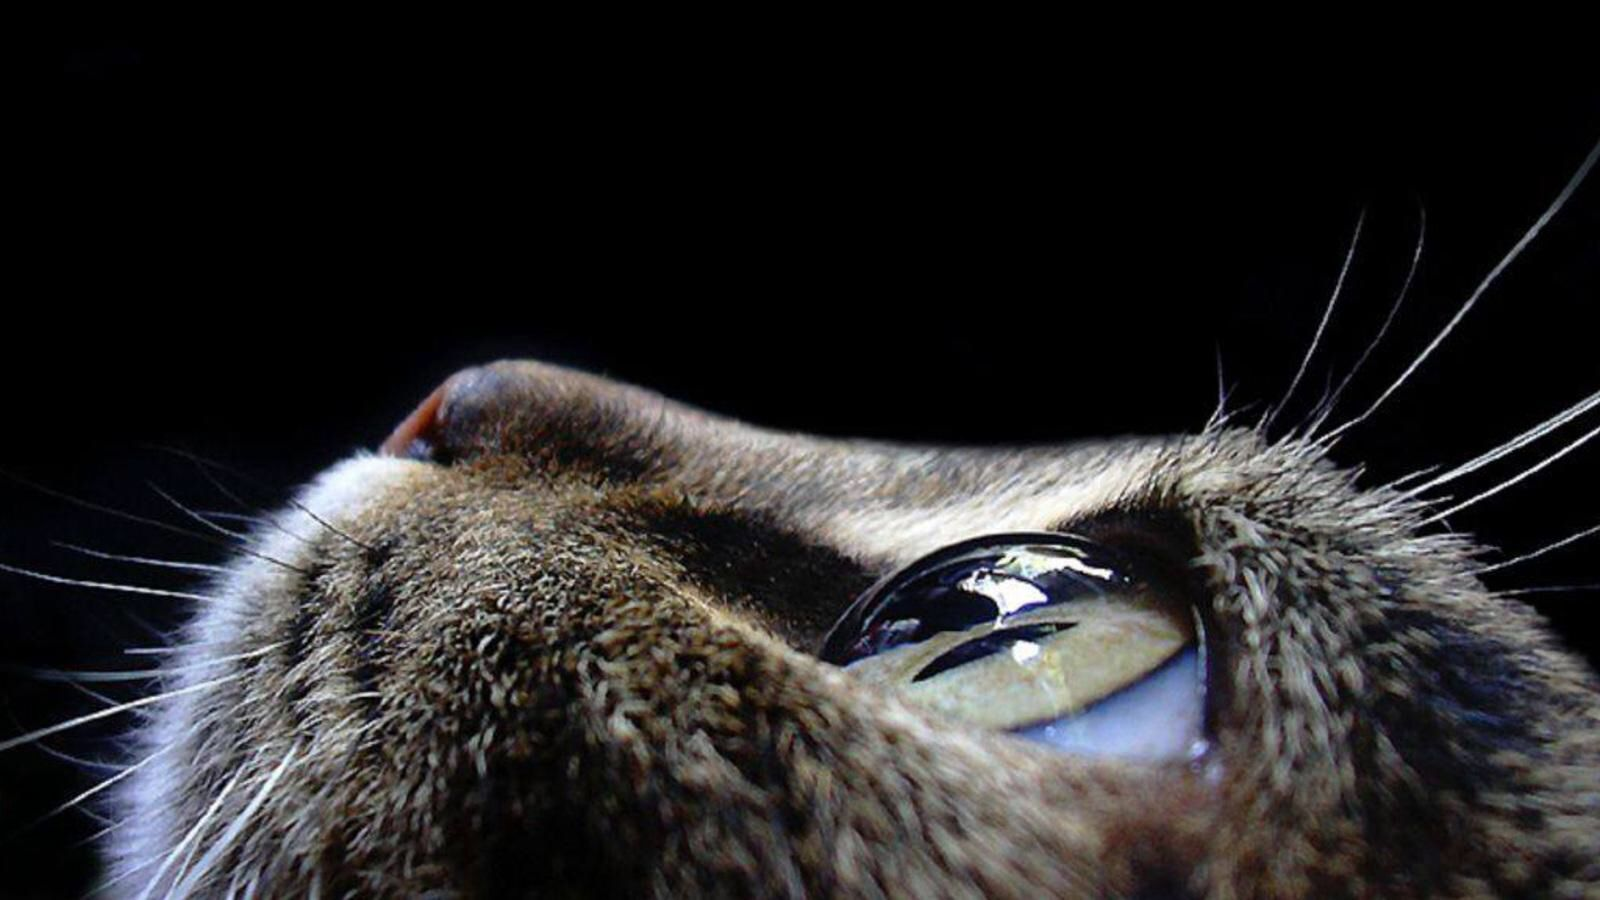 AMAZING & AWESOME cat eye close up.. Just PERFECT